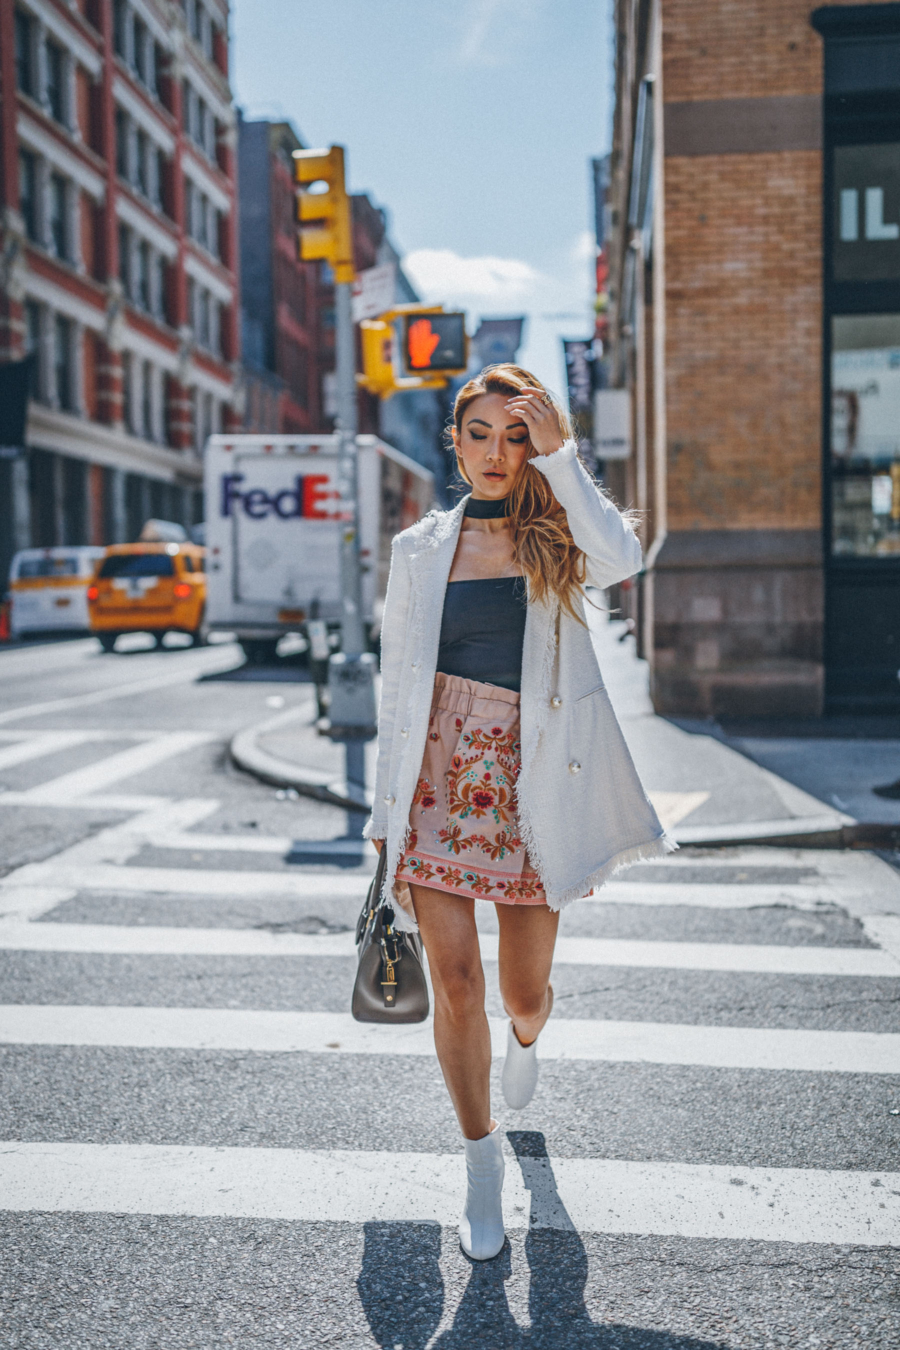 3 Foolproof Ideas for an Engaging Blog Post - Embroidered skirt, white boots, tweed jacket // Notjessfashion.com